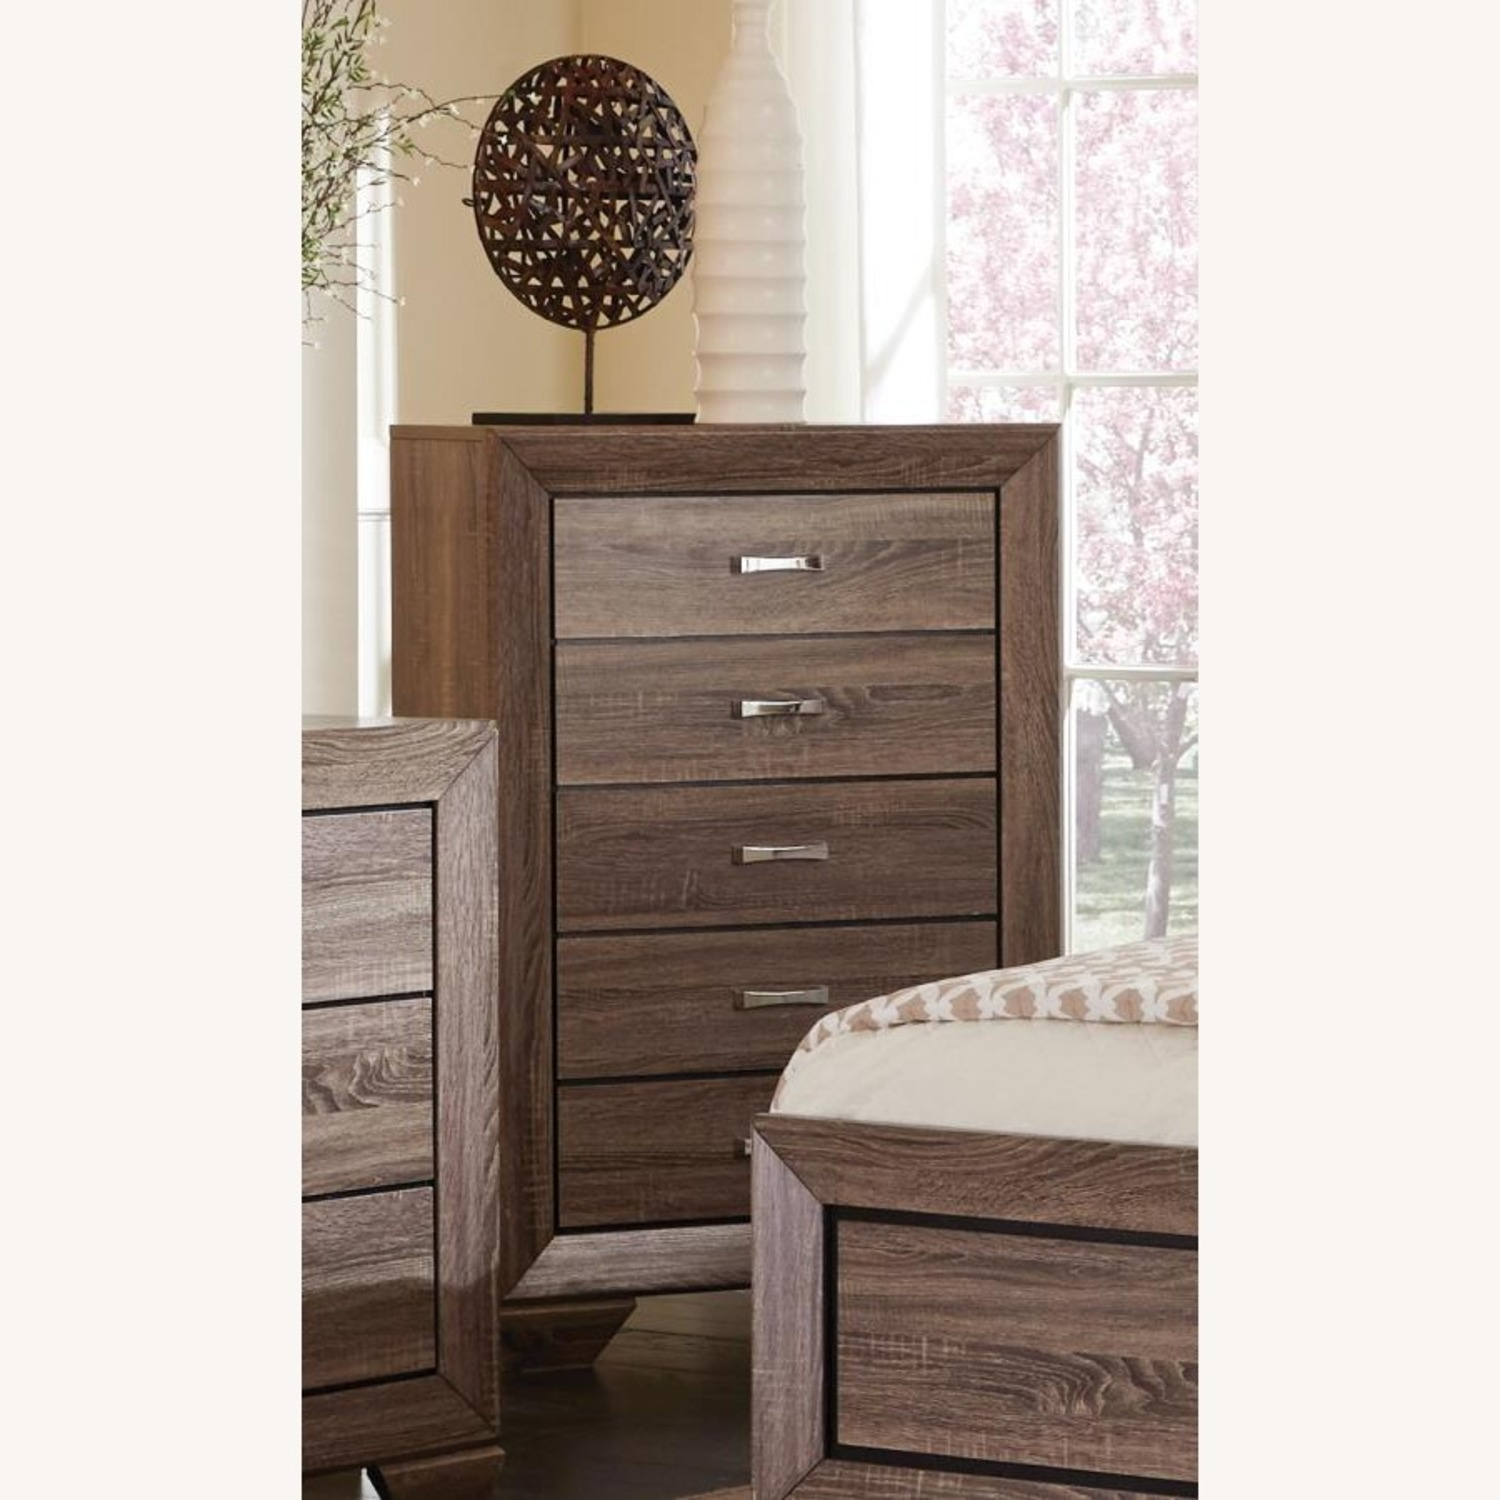 Chest In Washed Taupe Finish W/ Chrome Handles - image-5